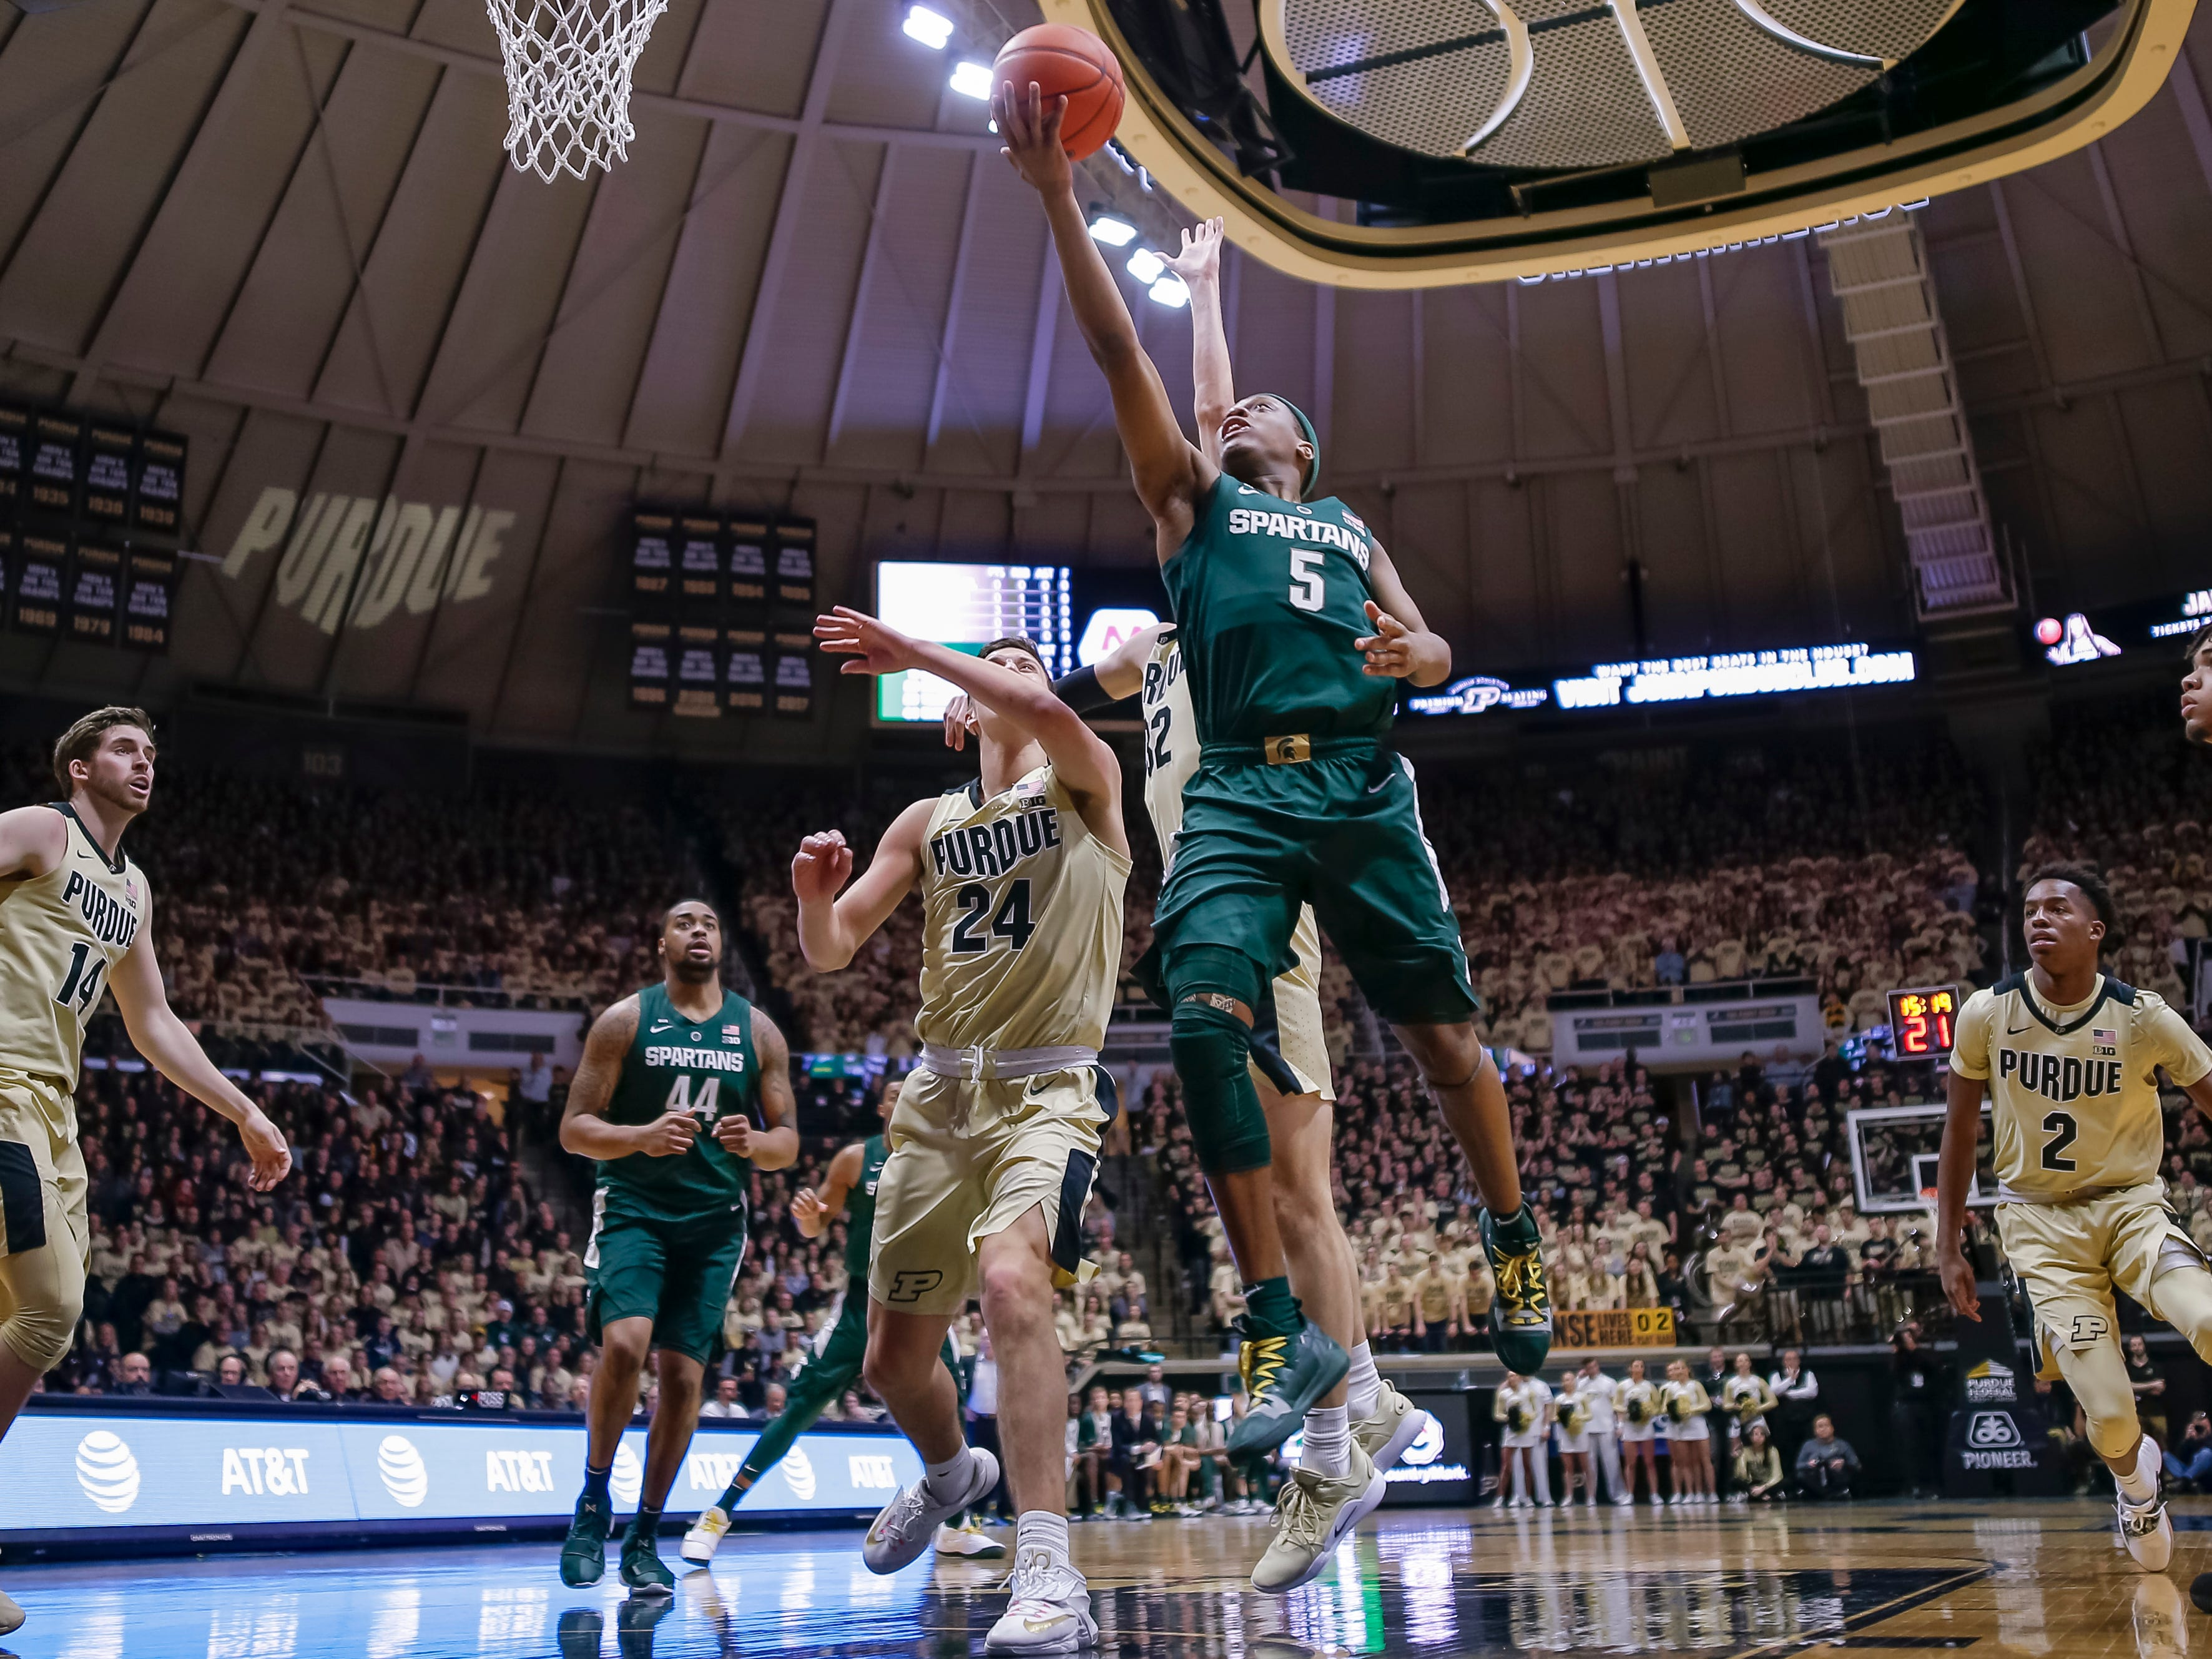 Cassius Winston #5 of the Michigan State Spartans shoots the ball over Grady Eifert #24 of the Purdue Boilermakers at Mackey Arena on January 27, 2019 in West Lafayette, Indiana.